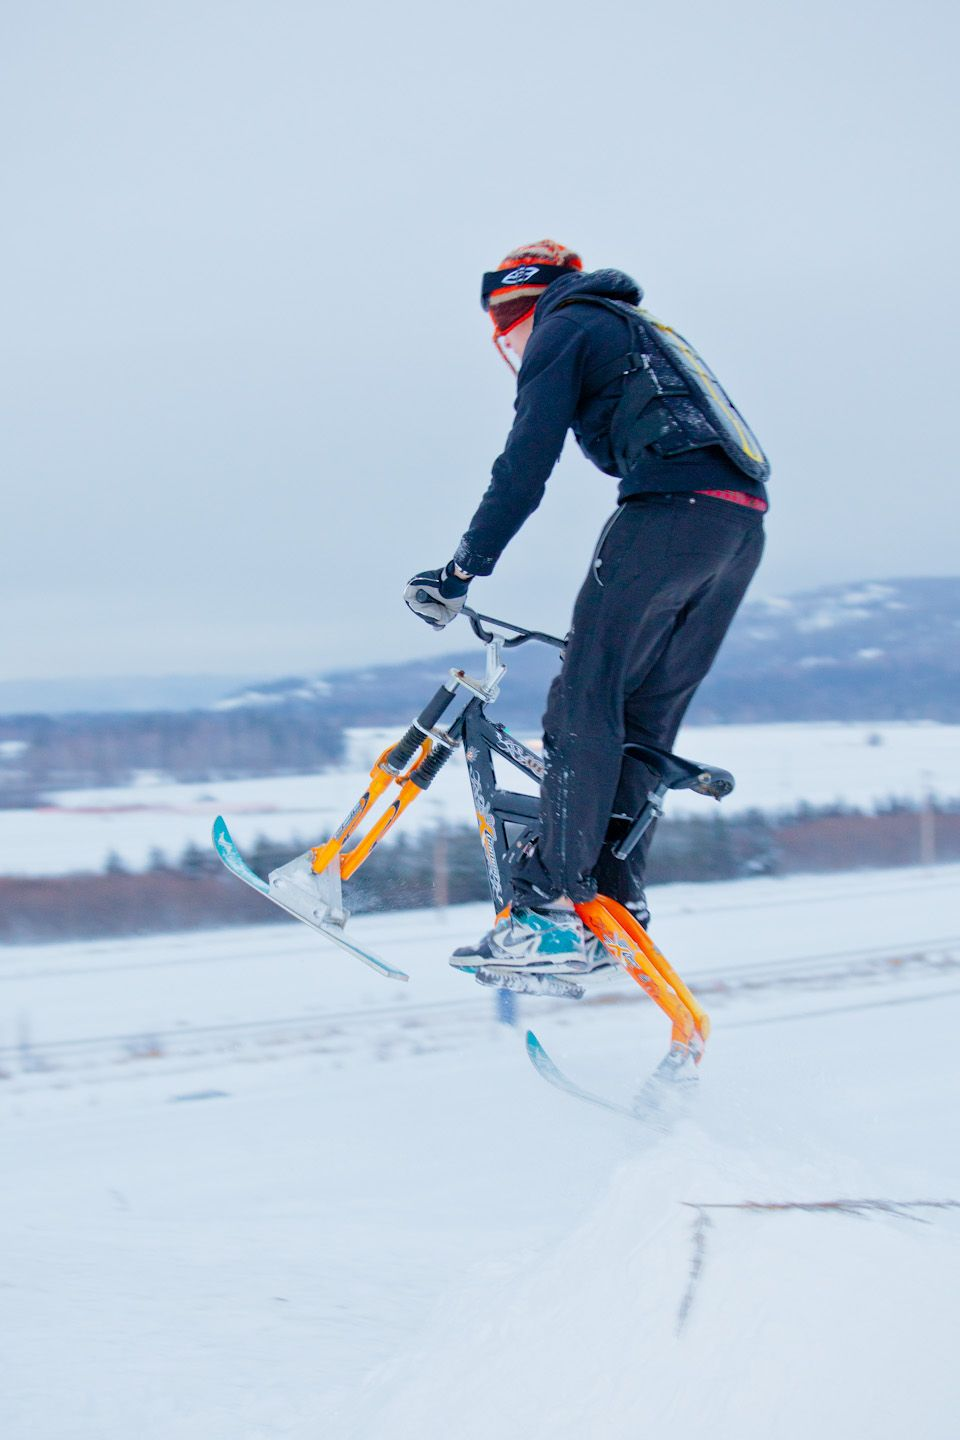 Ski Bike How Fun Does This Look Velo Ski Velo Vtt